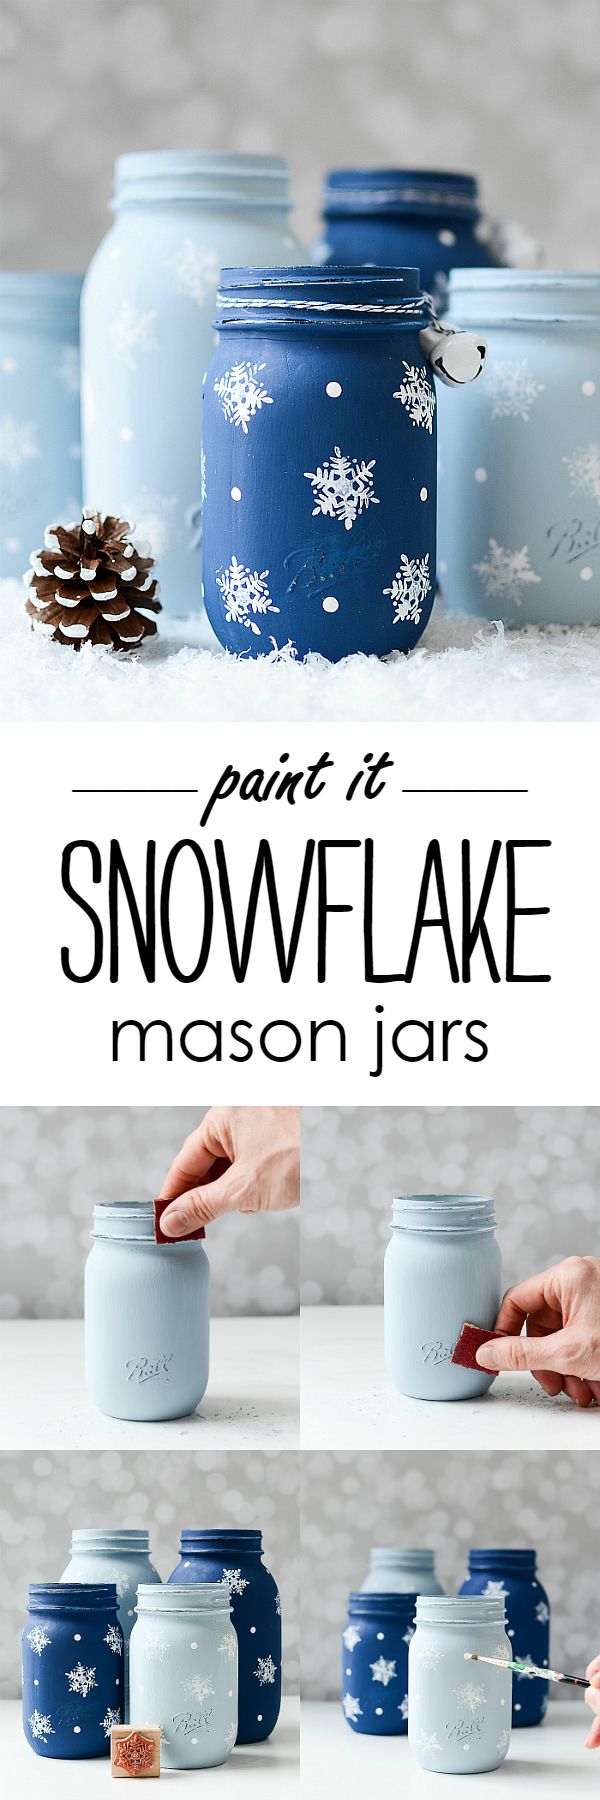 Snowflake Mason Jars It All Started With Paint